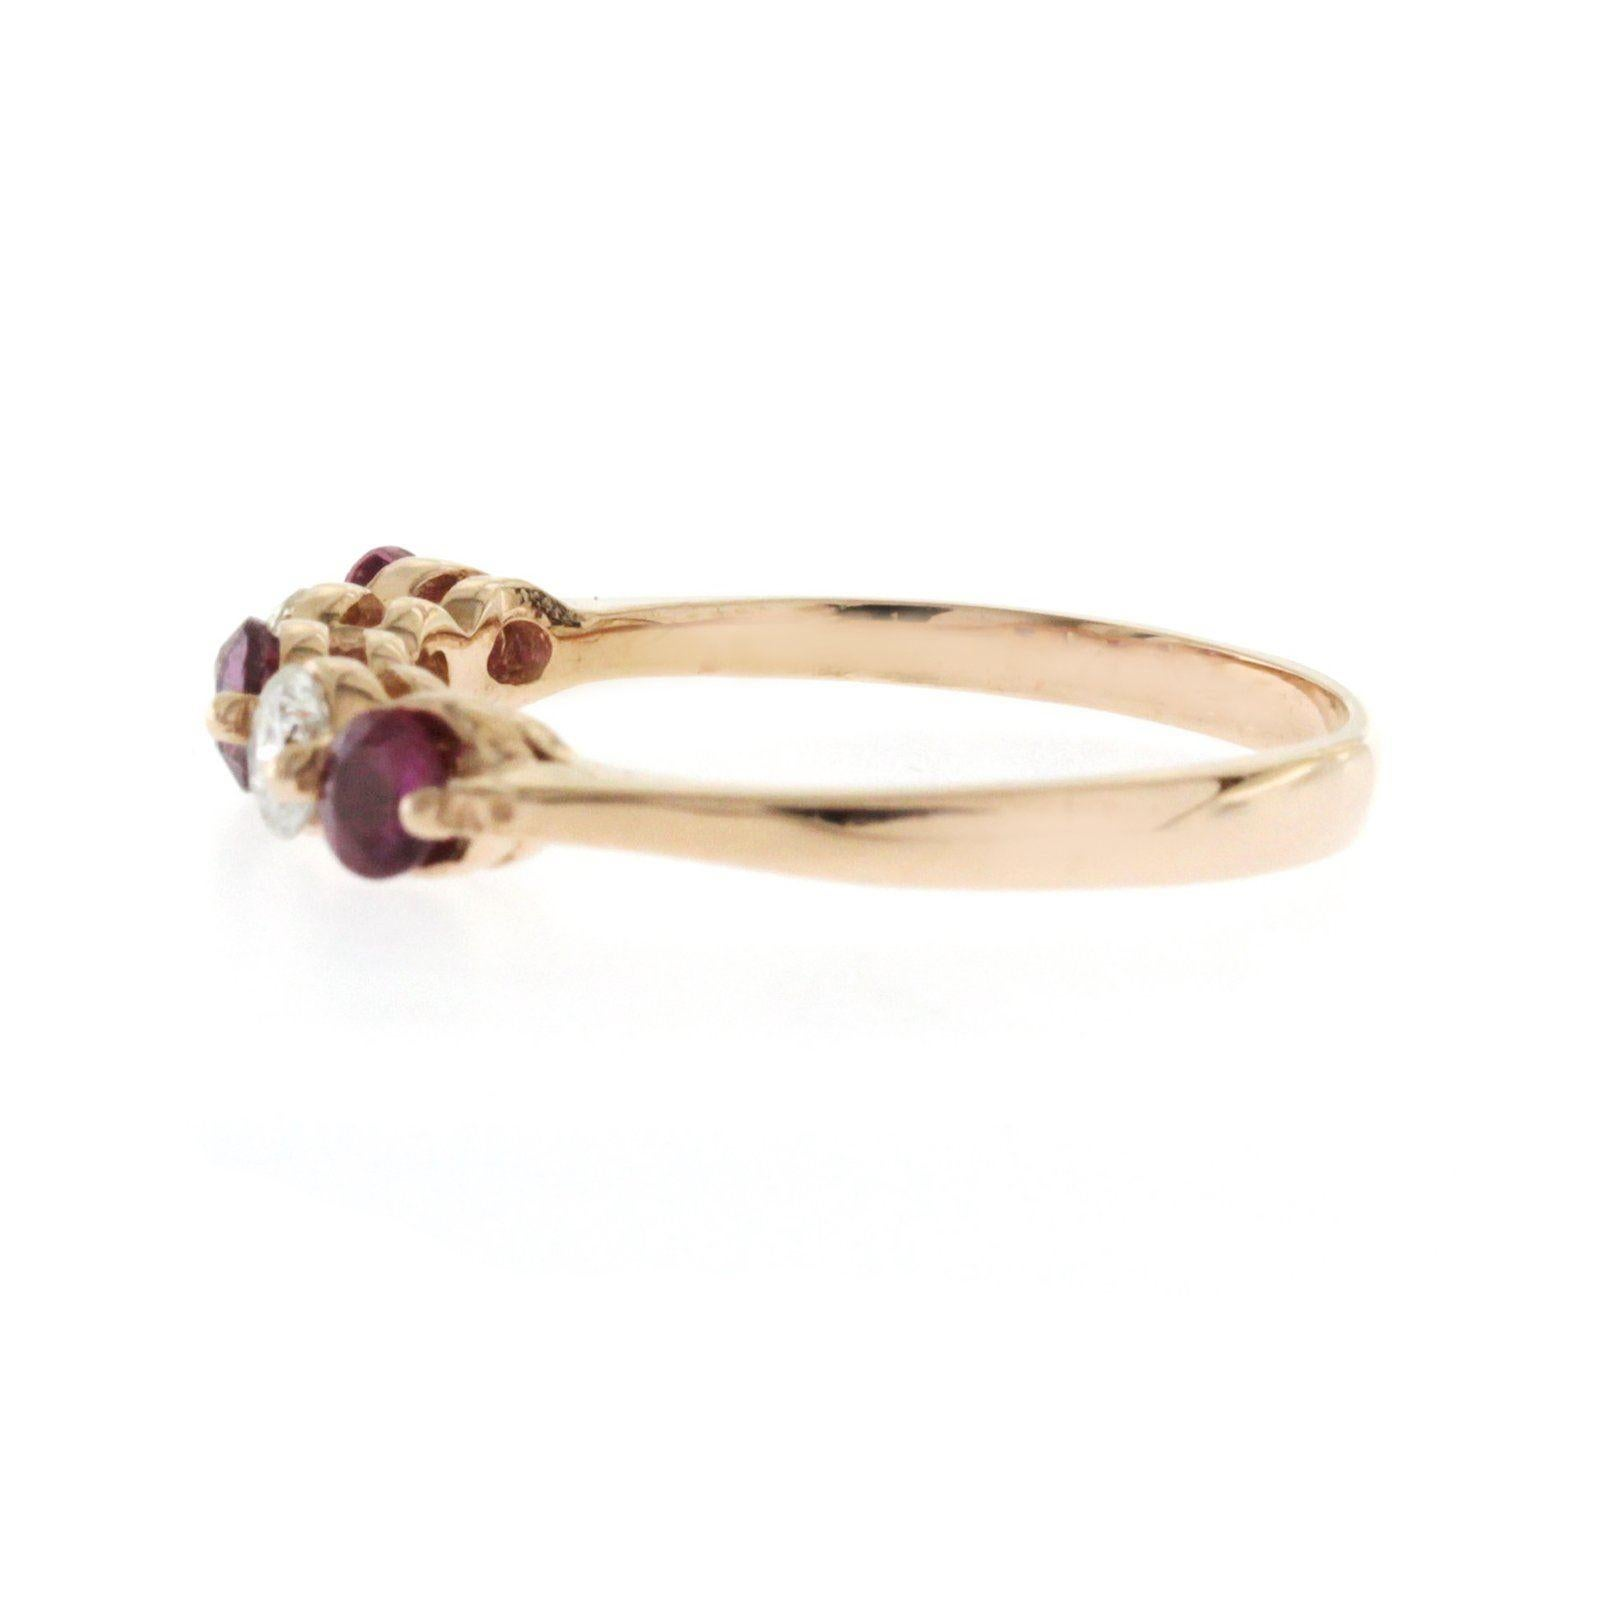 2585726569d52f 0.40 Ct Pink Sapphire and 0.30 Ct Diamonds In 14k Rose Gold Wedding Band  Ring For Sale at 1stdibs